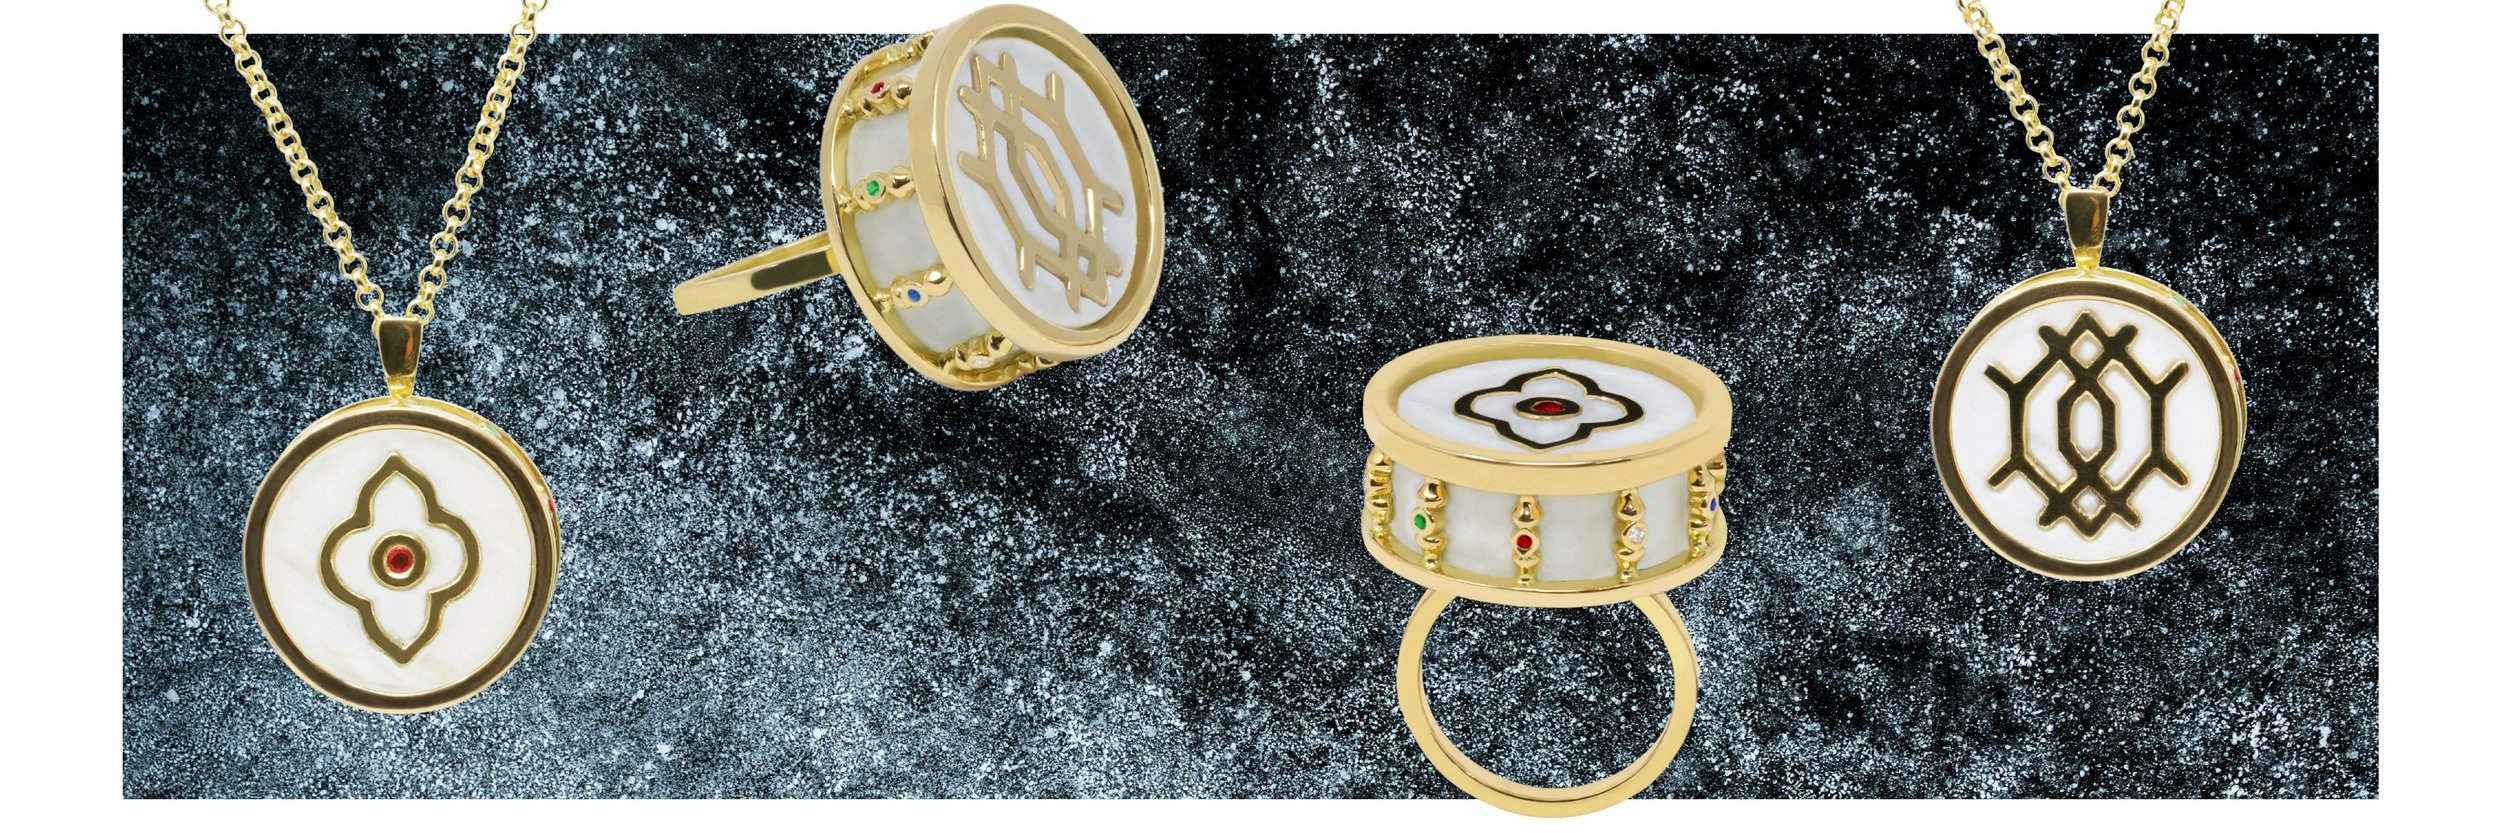 MARBLED MOTIFS - The Geo & Arabesque range of pendants and rings are statement pieces dripping in decadence. Meticulously crafted with dazzling gold motifs inlayed into precious Calacatta marble, this combination creates a gorgeous, high end and distinctive look.